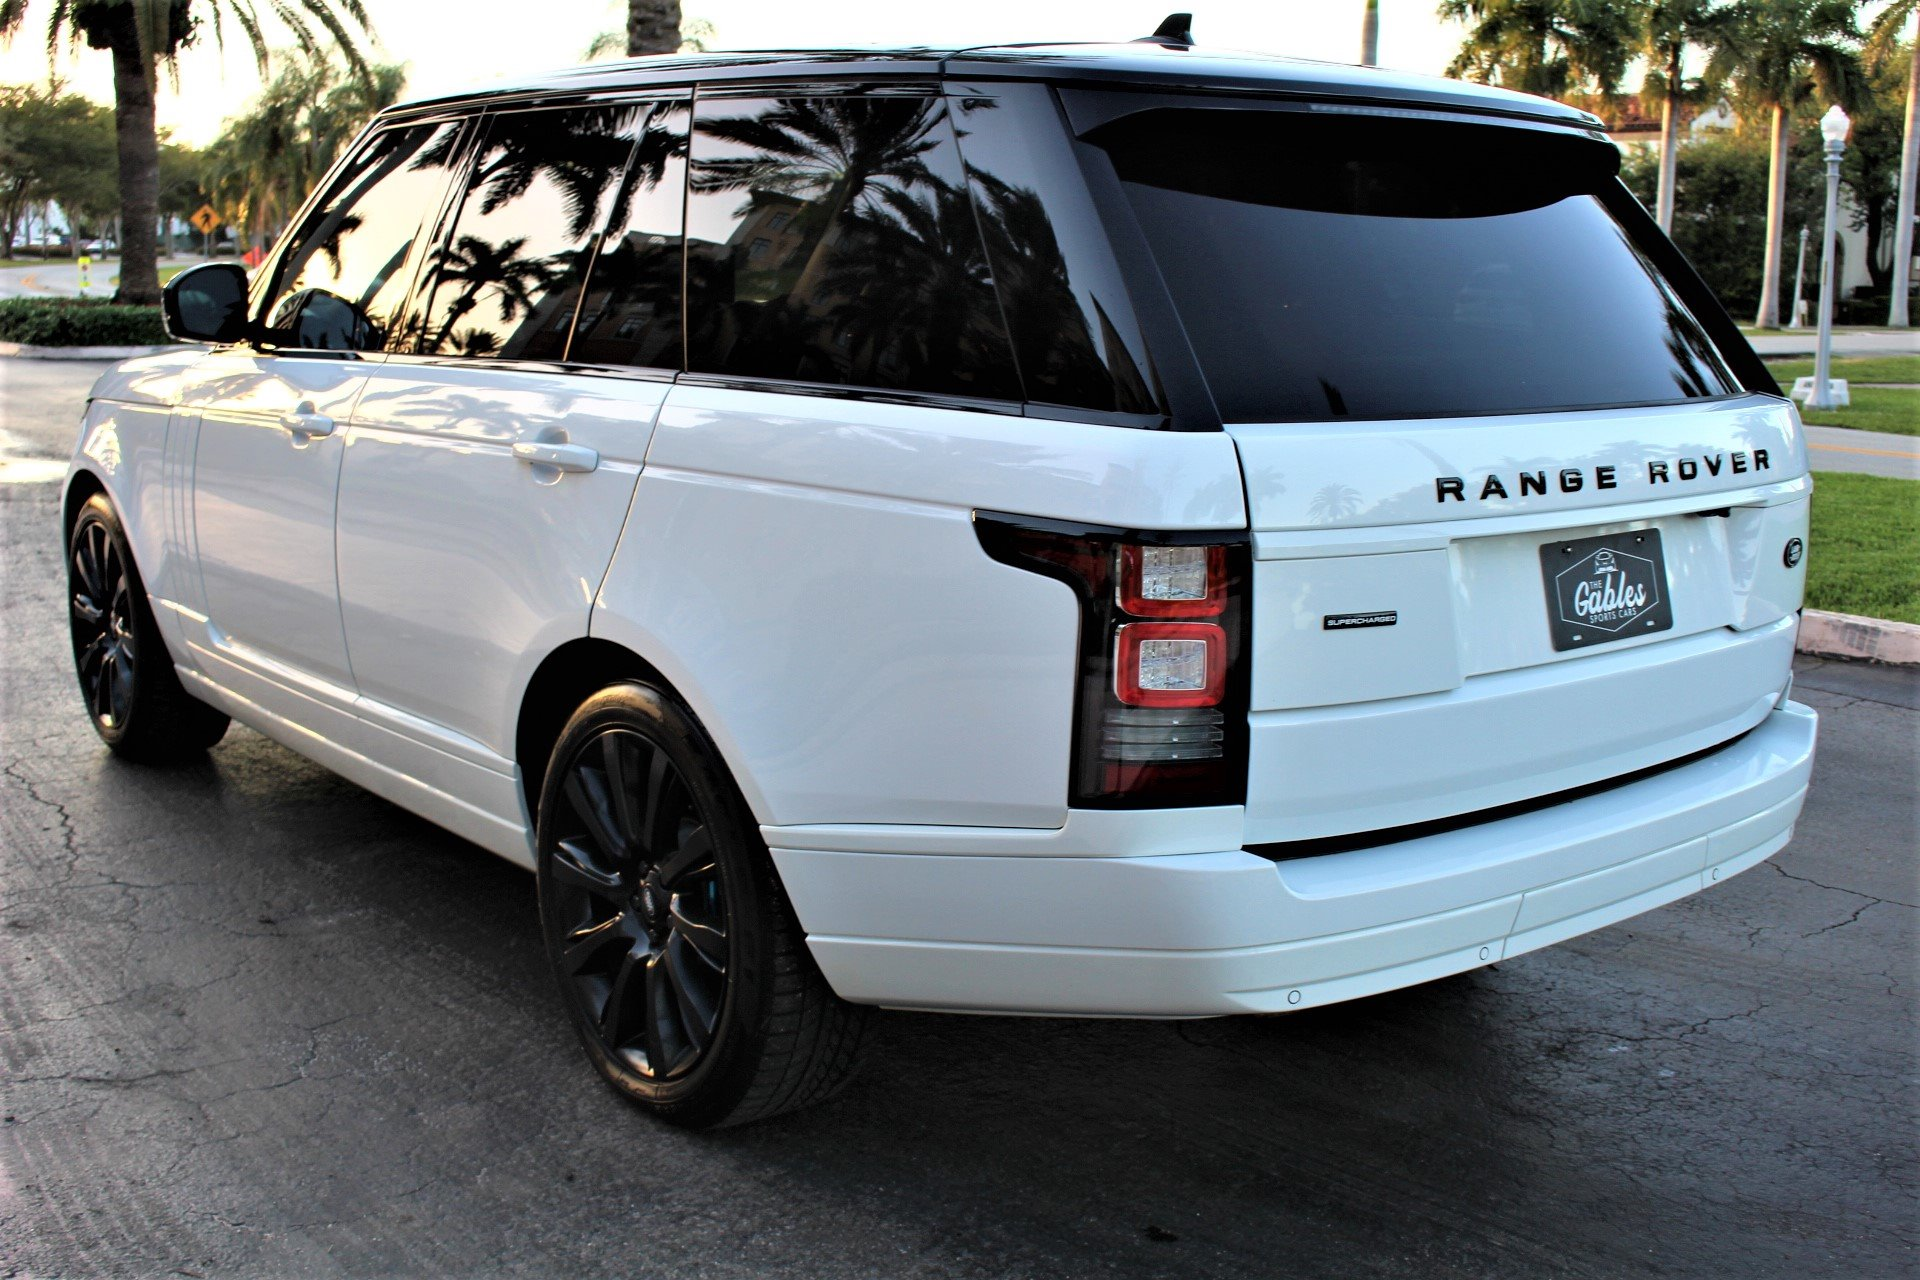 Used 2016 Land Rover Range Rover Supercharged for sale $53,850 at The Gables Sports Cars in Miami FL 33146 1